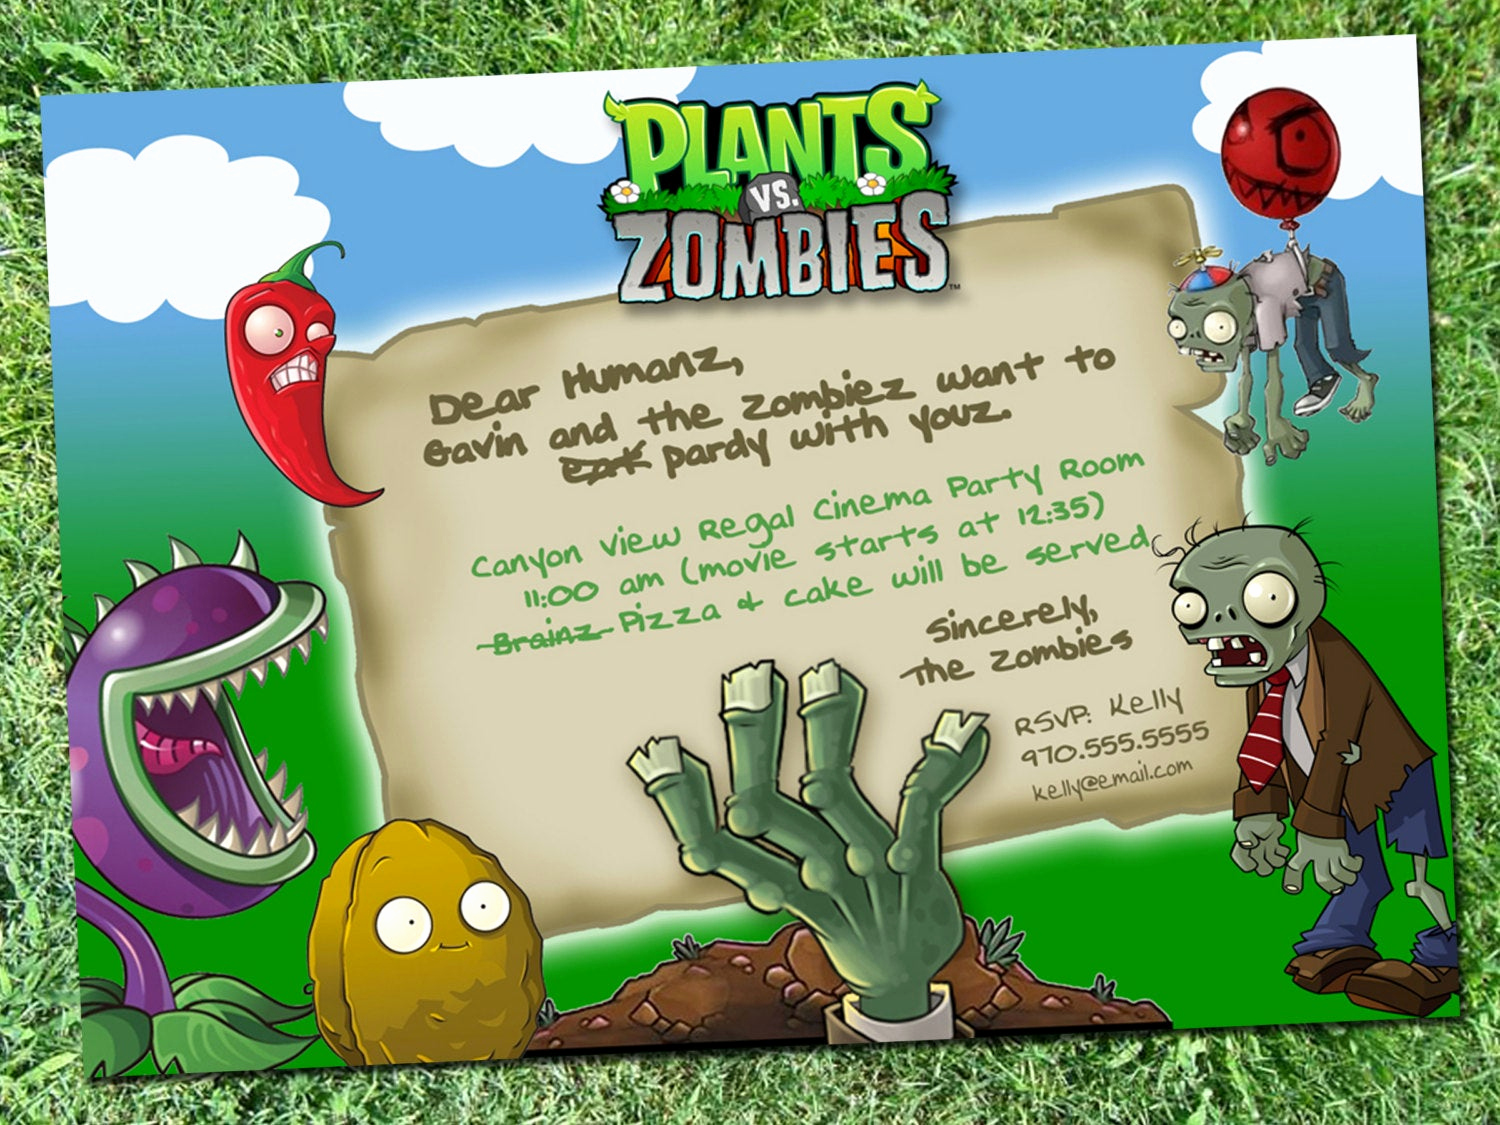 Plants Vs Zombies Invitation Template Lovely Plants Vs Zombies Party Invitation Digital Download